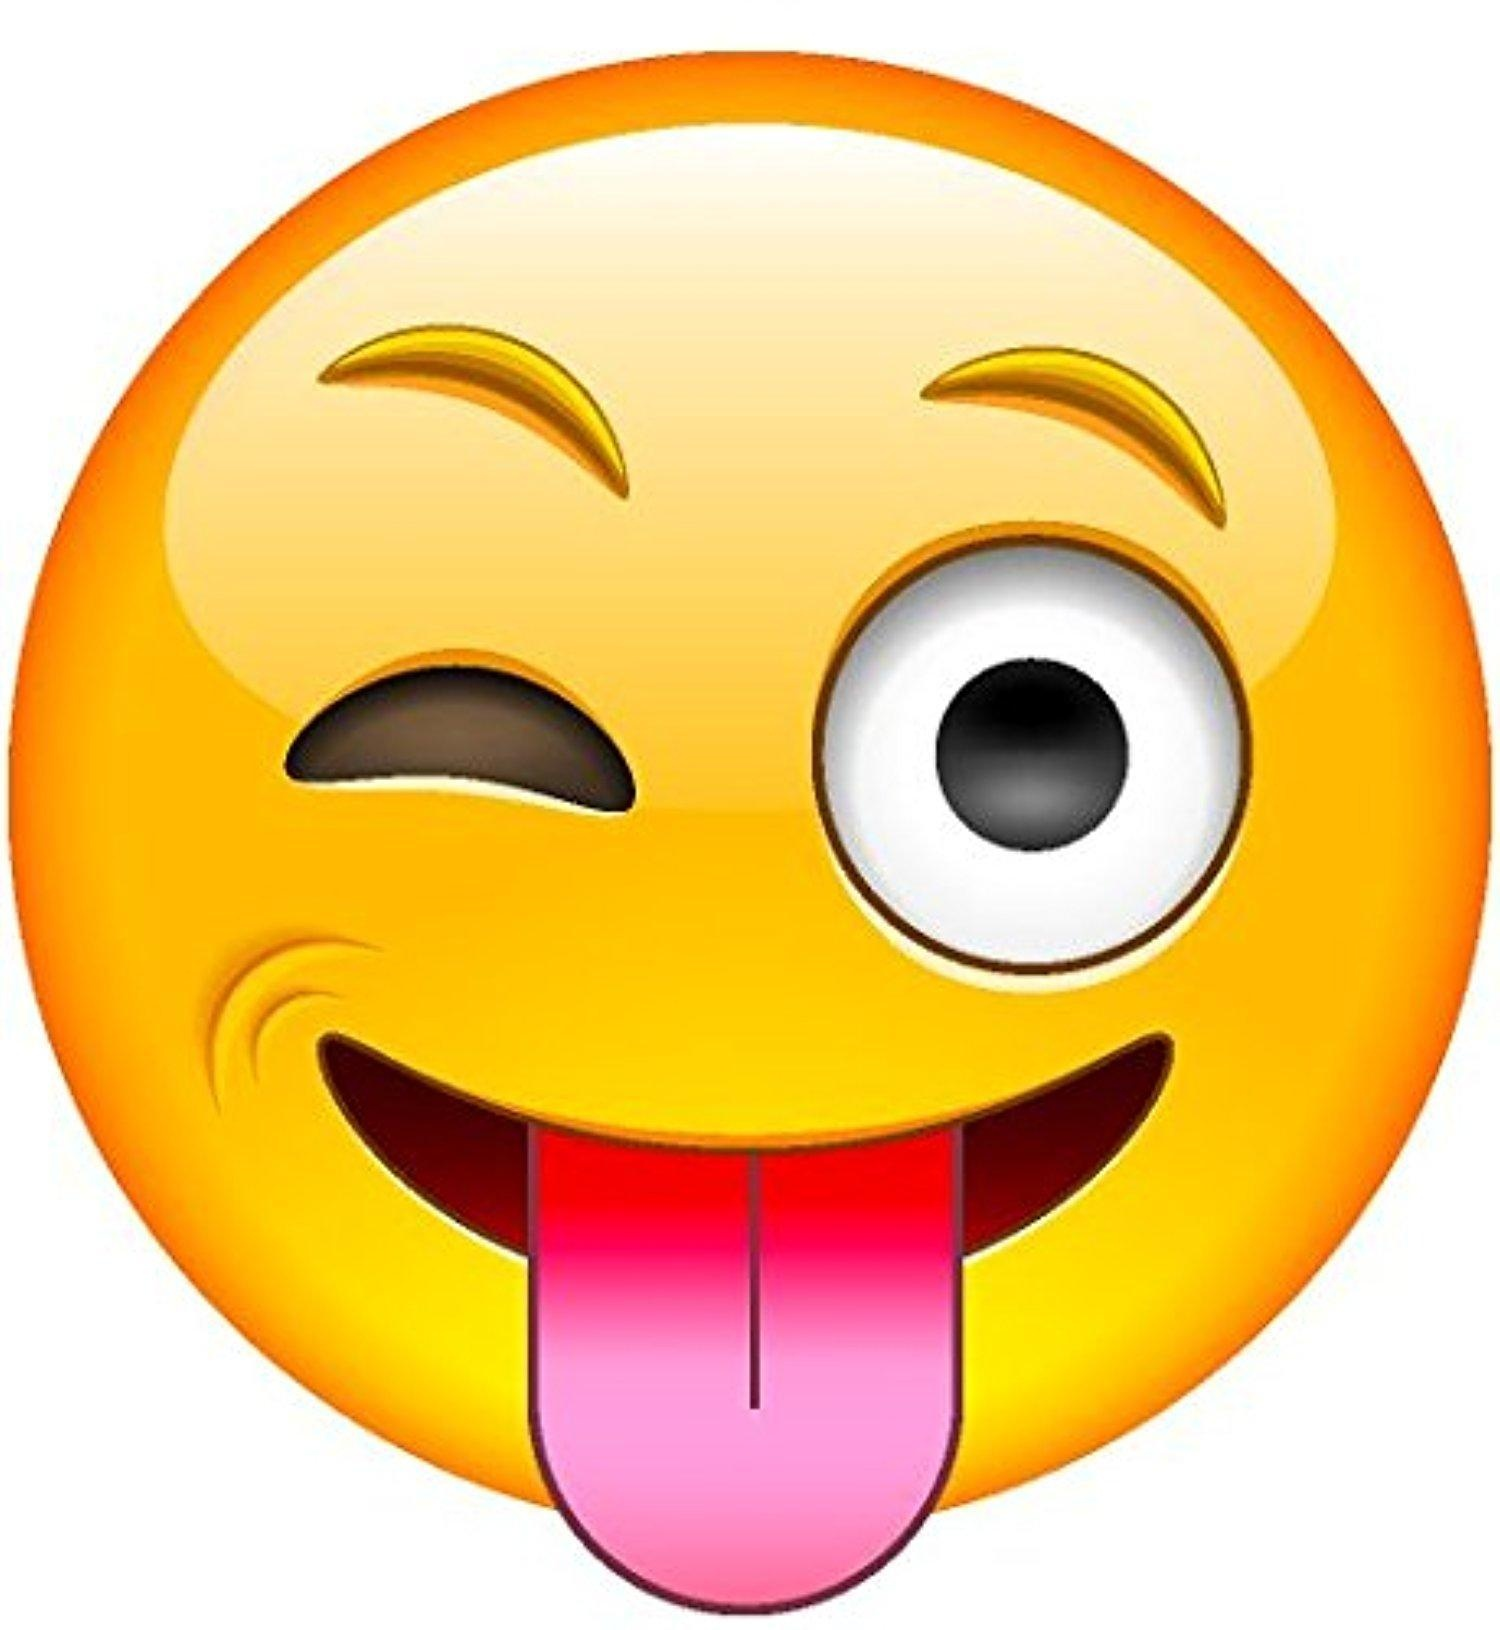 Wink Smiley Face - ClipArt Best